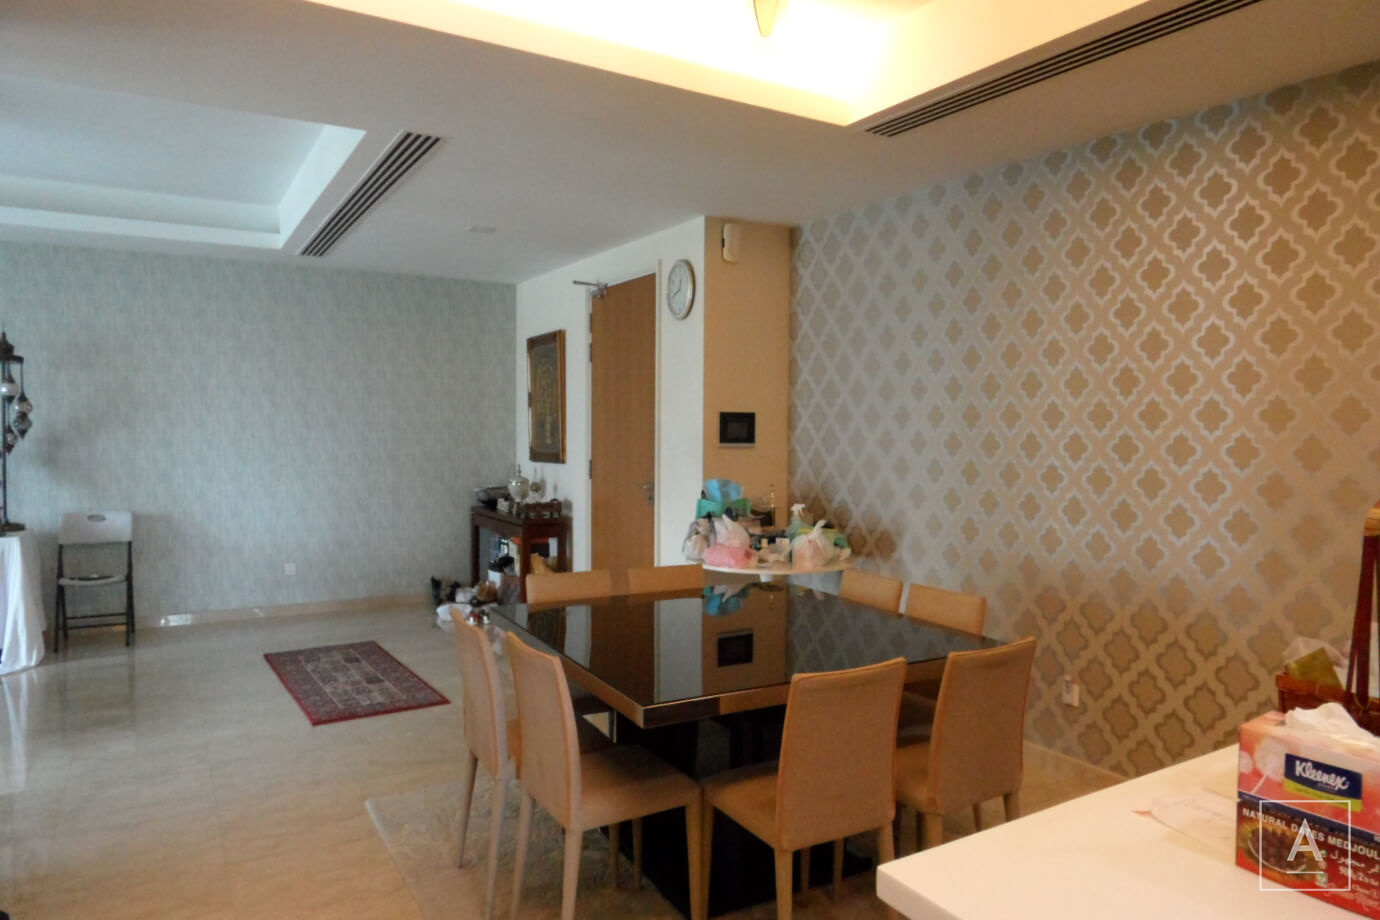 28 Mont Kiara, Mont Kiara,Kuala Lumpur, 3 Bedrooms Bedrooms, ,4 BathroomsBathrooms,Condominium / Serviced Residence,For Sale,Mont Kiara,2149